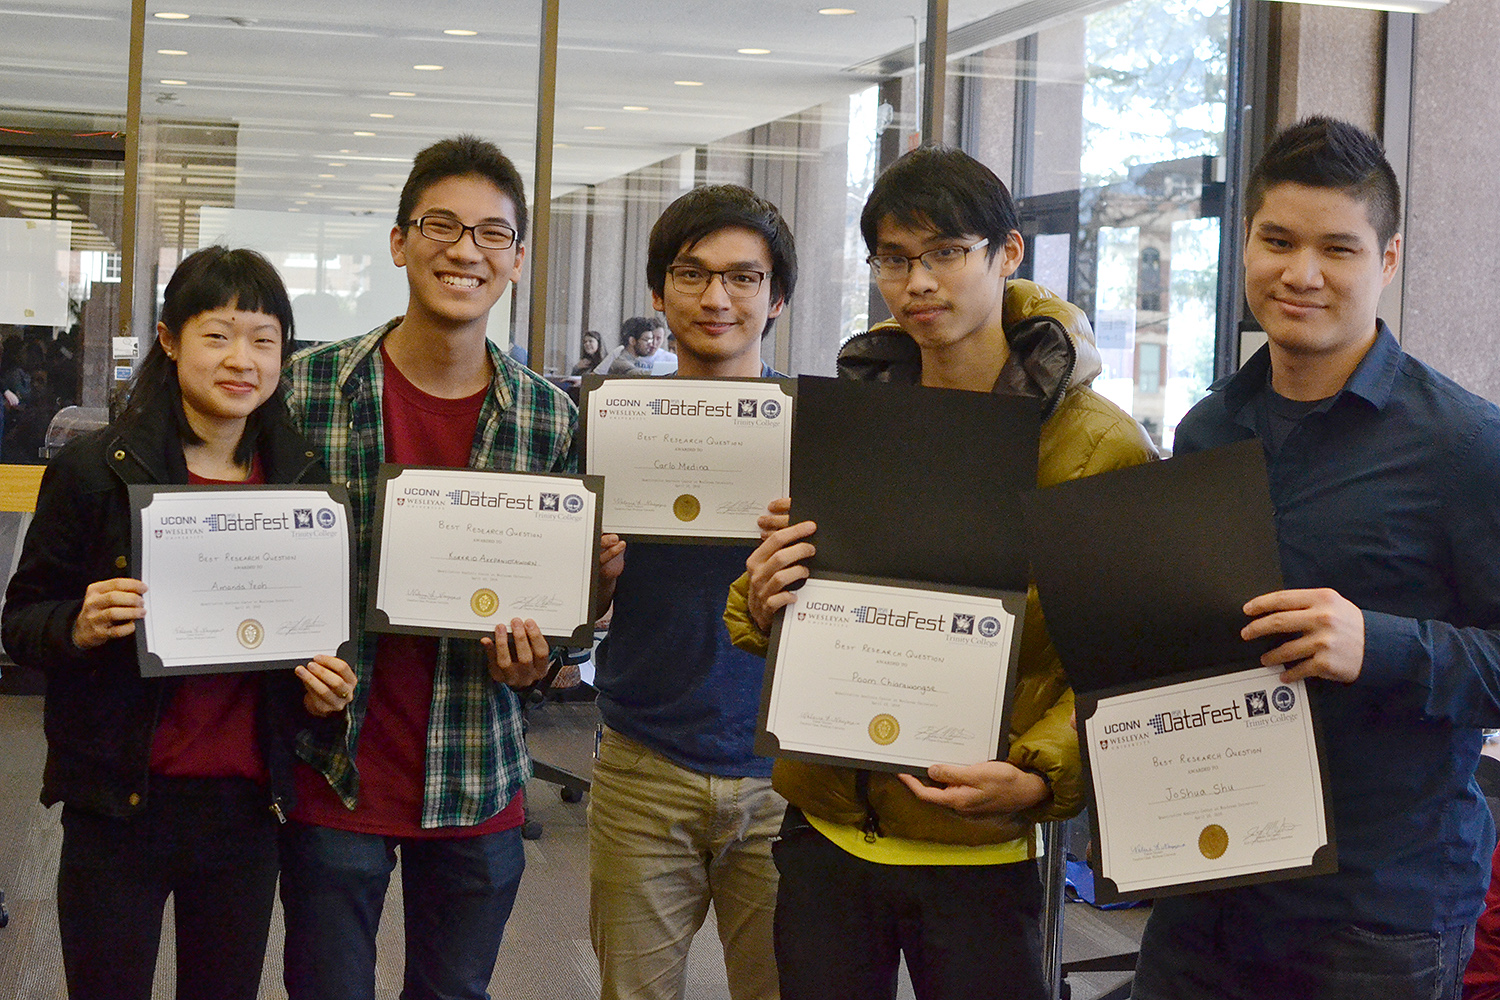 The Wesleyan Team Databytes received honorable mention for Best Research Question. Teammates included Amanda Yeoh '19,Korkrid (Kyle) Akepanidtaworn '18, Carlo Medina '18, Poom Chiarawongse '19 and Joshua Su '17.